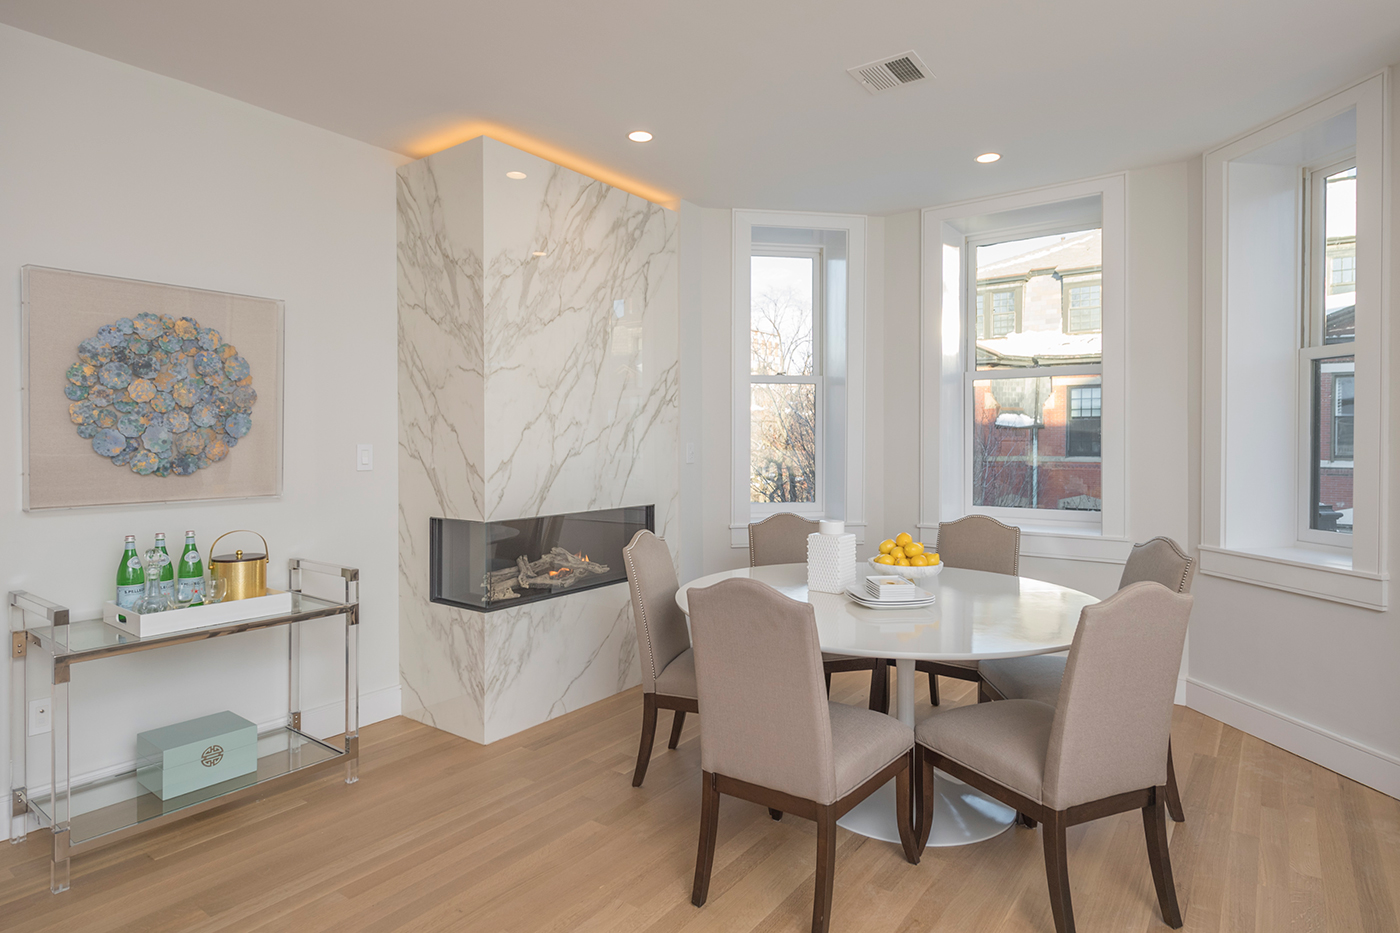 Fireplace surround with Neolith